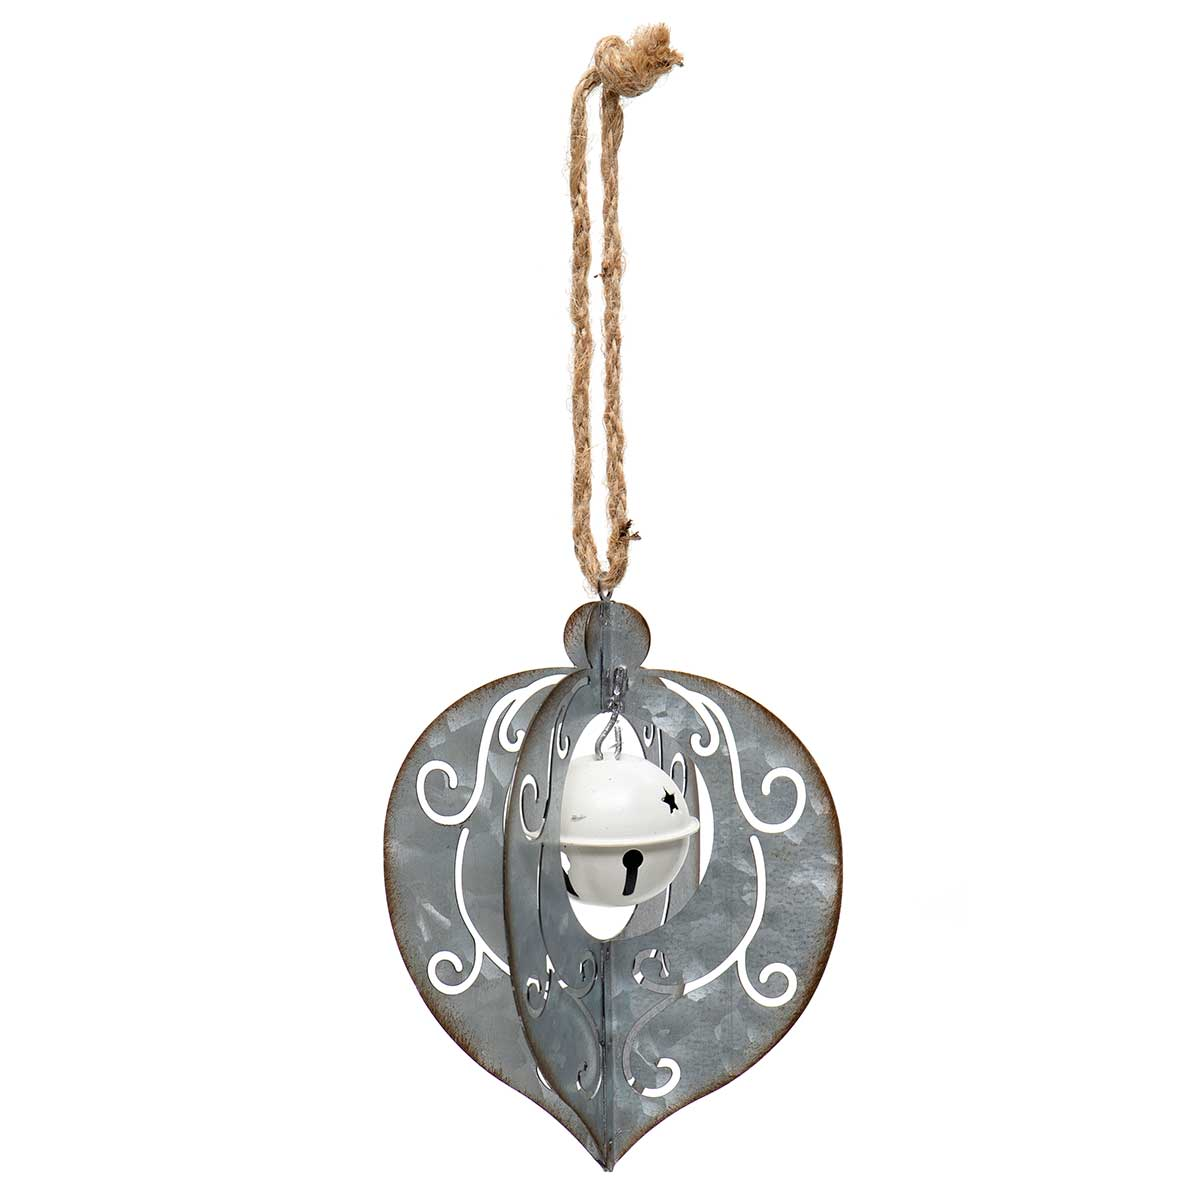 METAL KISMET ORNAMENT WITH JINGLE BELL